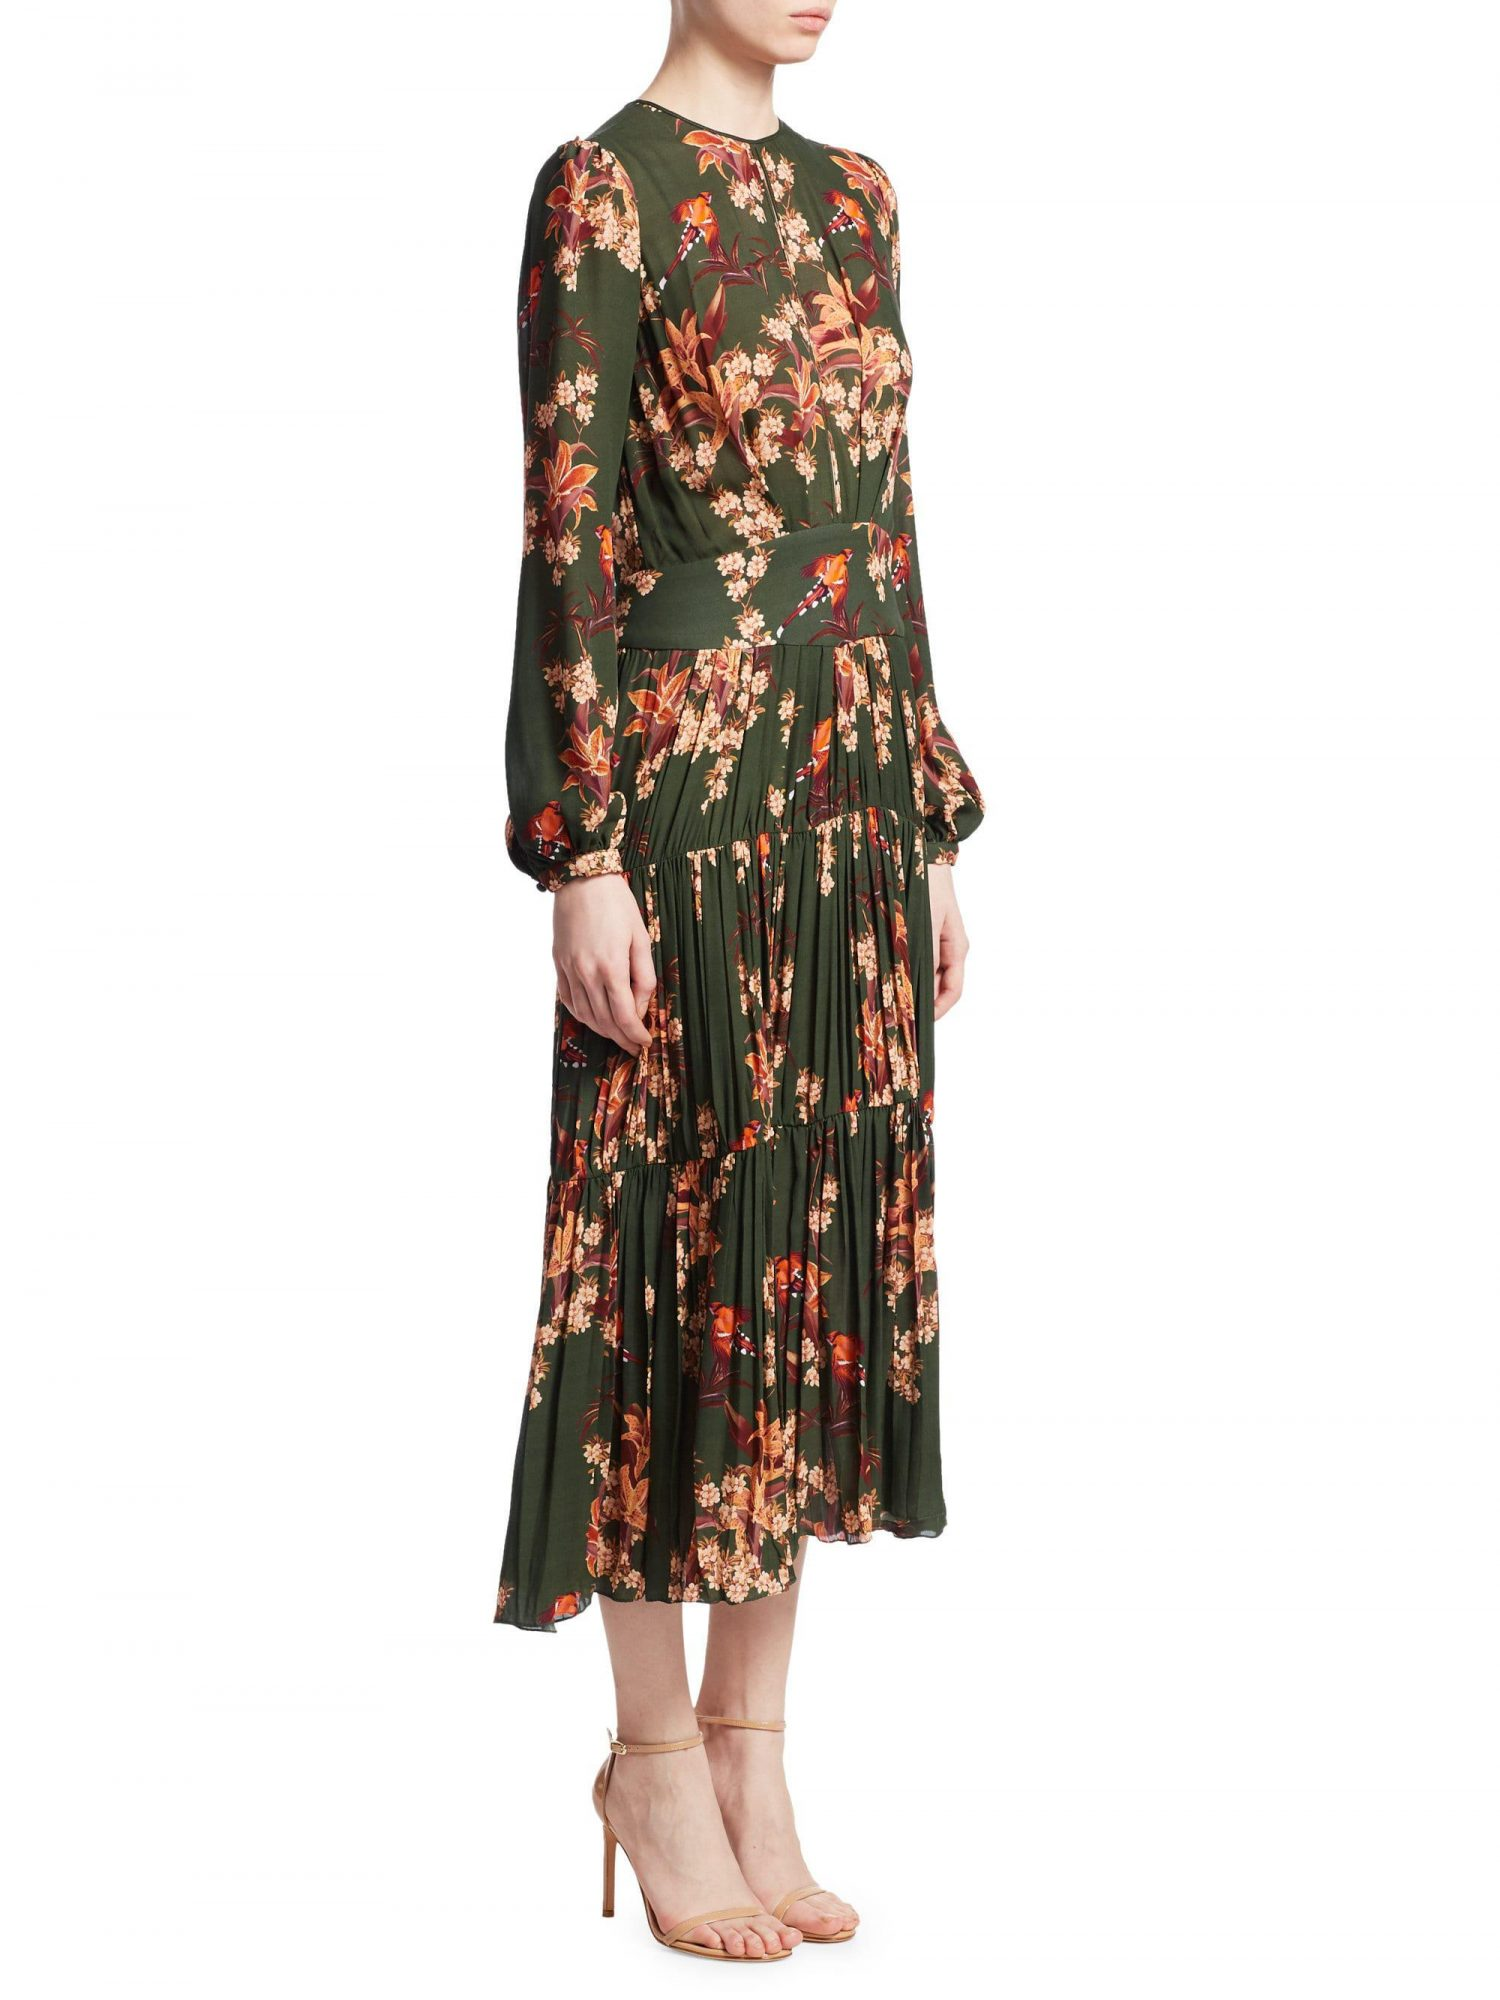 c4107bb309b6 What to Wear to a Winter Wedding - Winter Wedding Guest Dresses ...